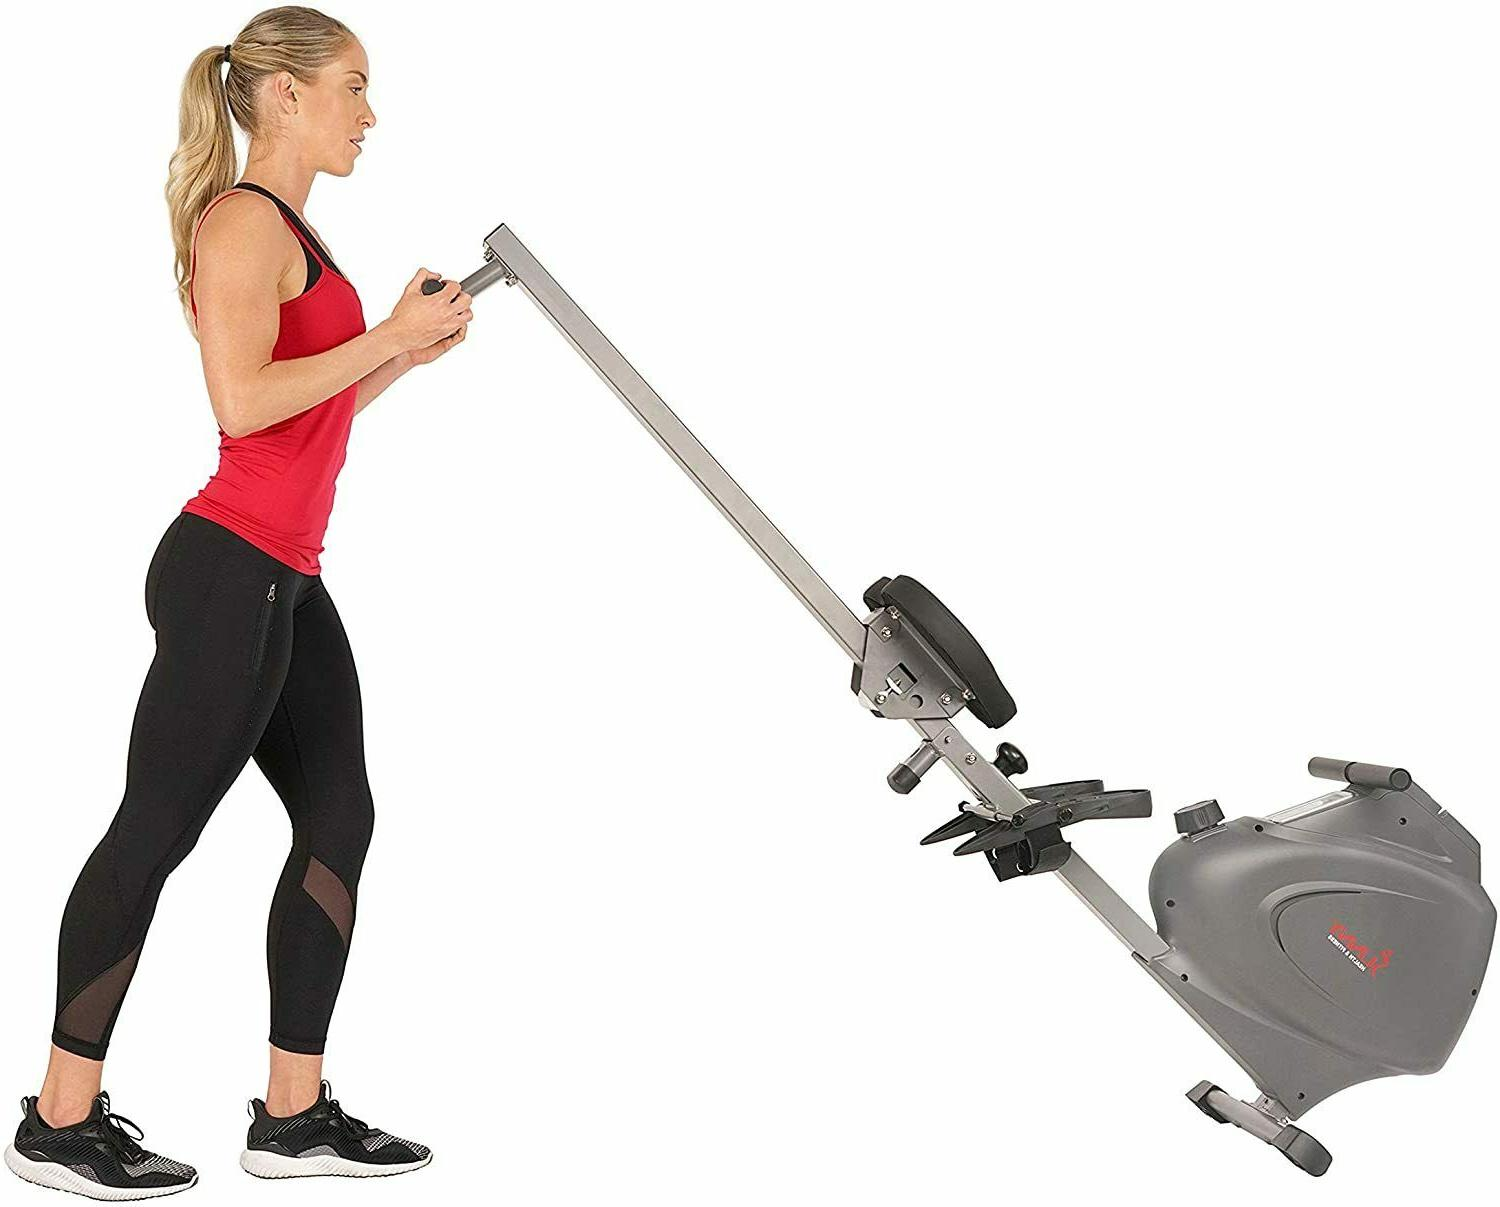 Compact Rowing Machine within 7 days